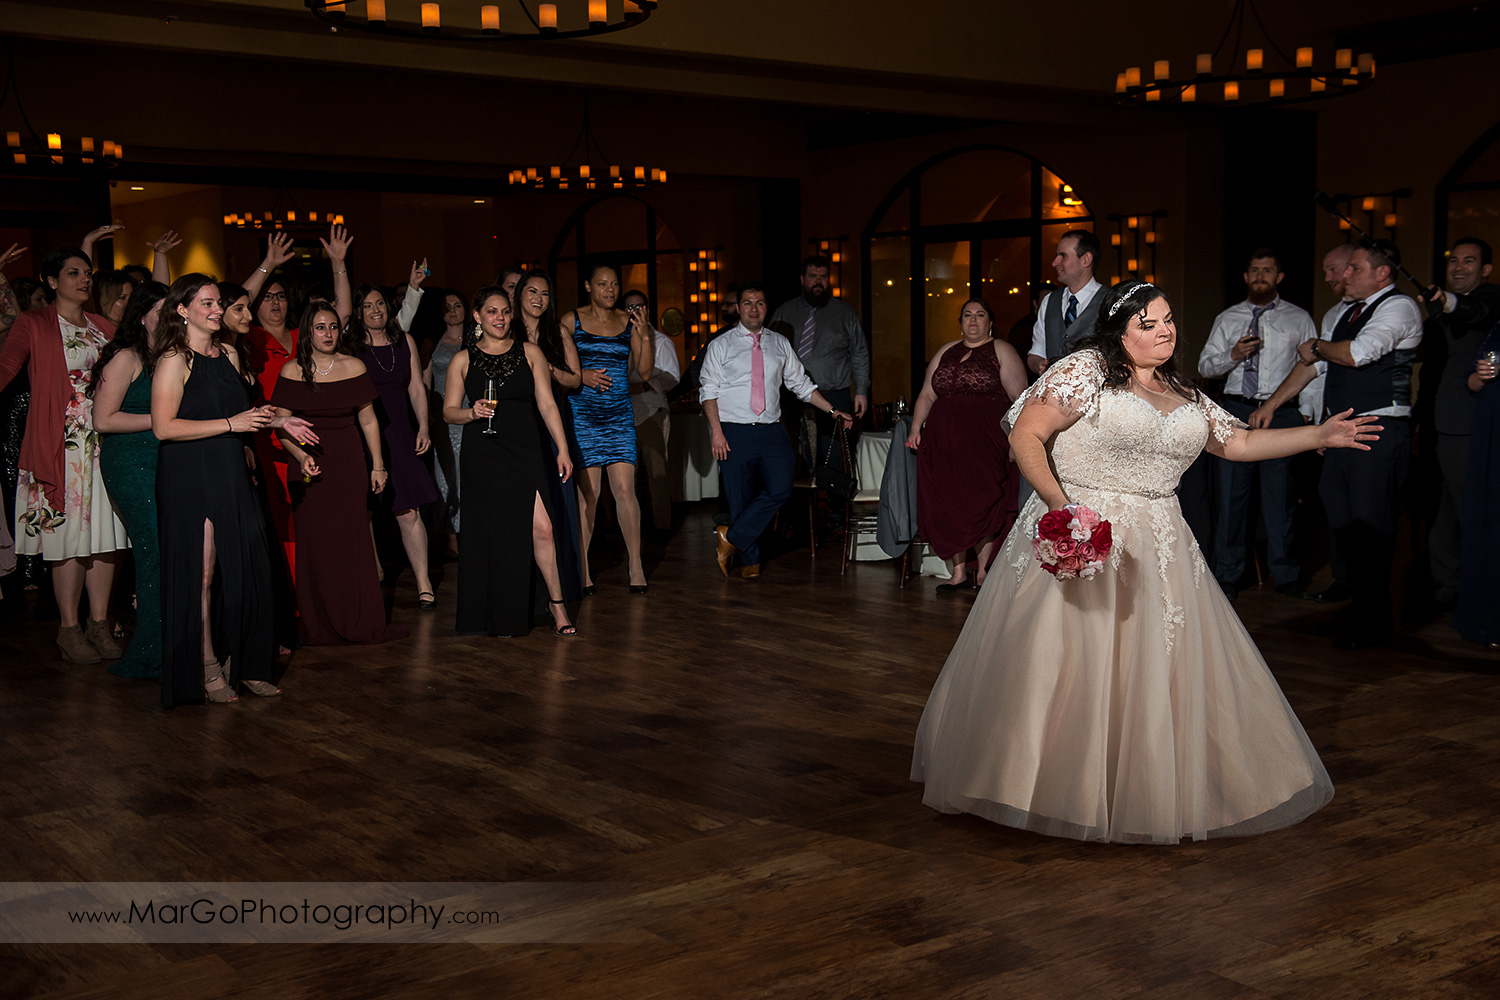 bride tossing the bouquet during wedding reception at Livermore Garre Vineyard and Winery